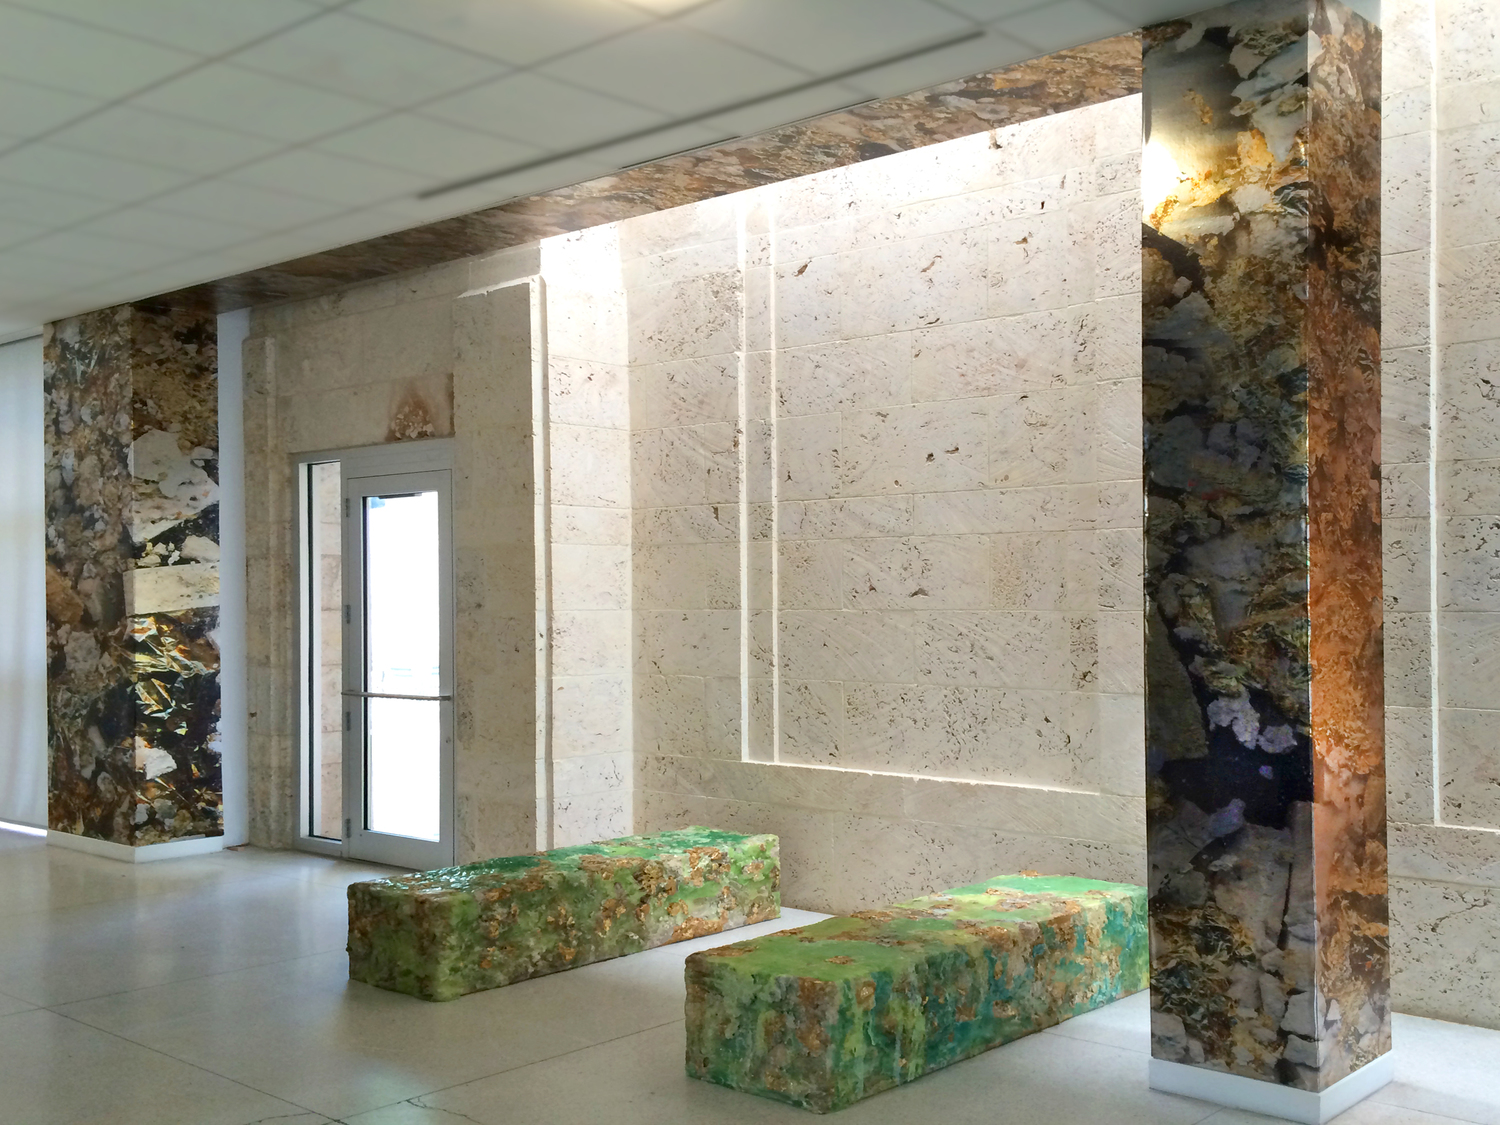 Installation view of Limestone Bearing Gold Veins at The Bass Museum of Art. Metallic wallcovering and handmade benches by Cristina Lei Rodriguez.